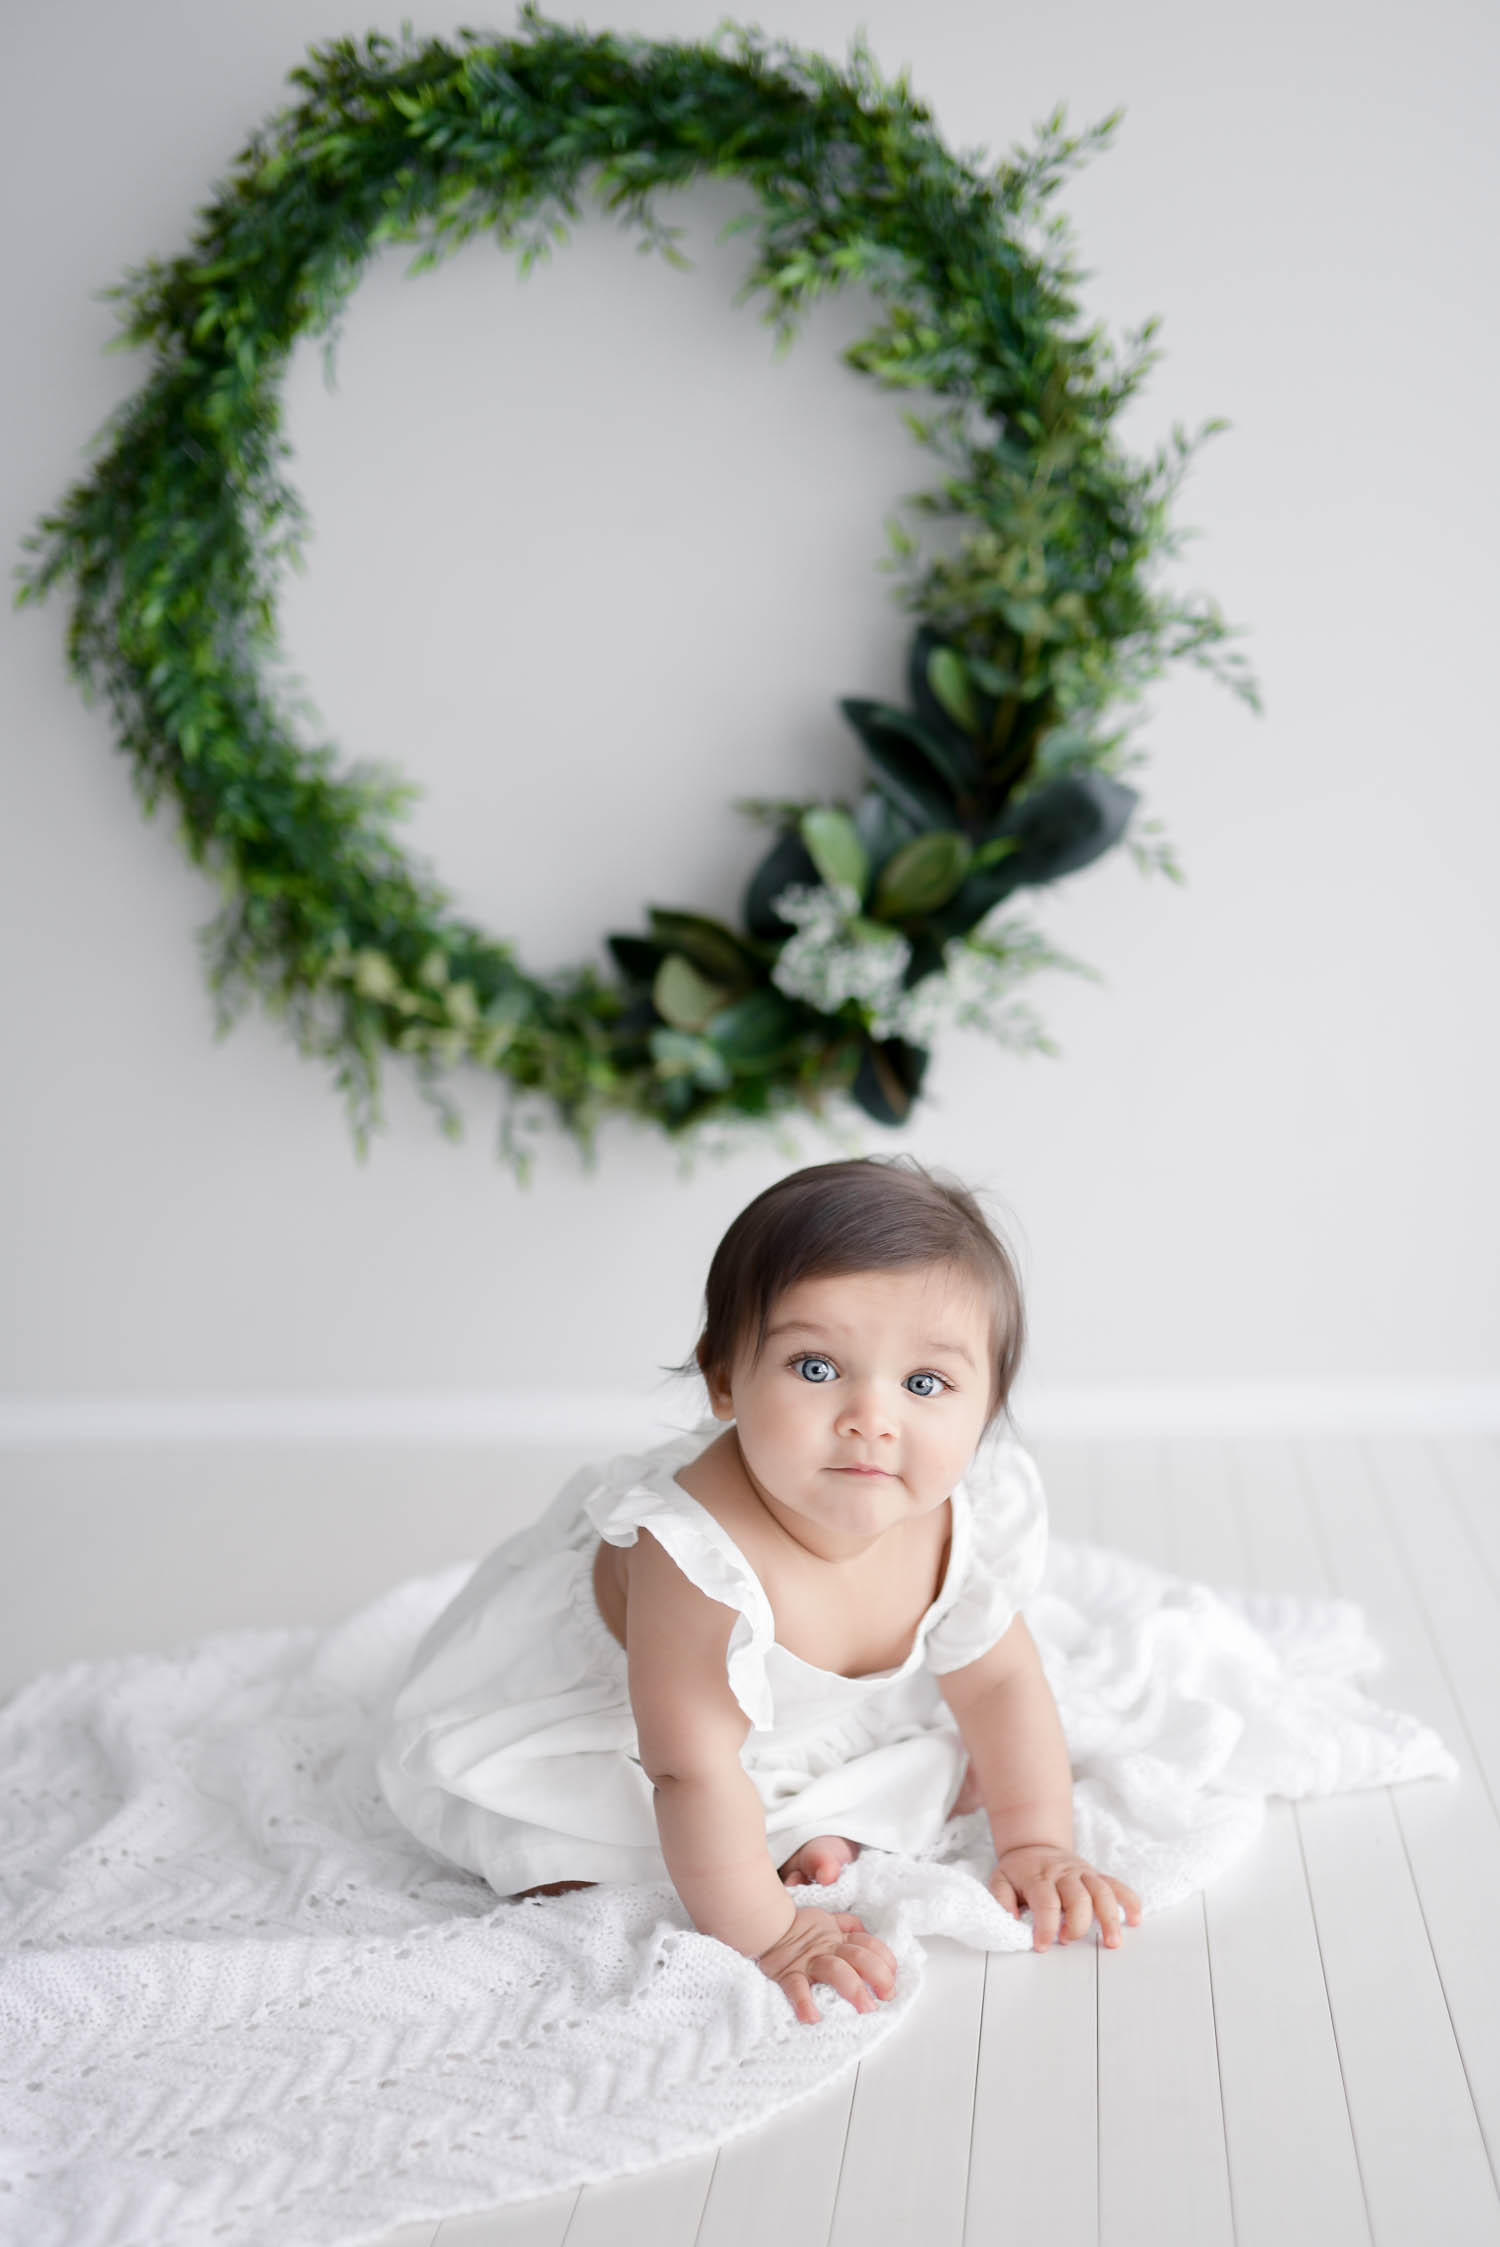 Baby sitting on white blanket wearing white dress Christmas wreath in background